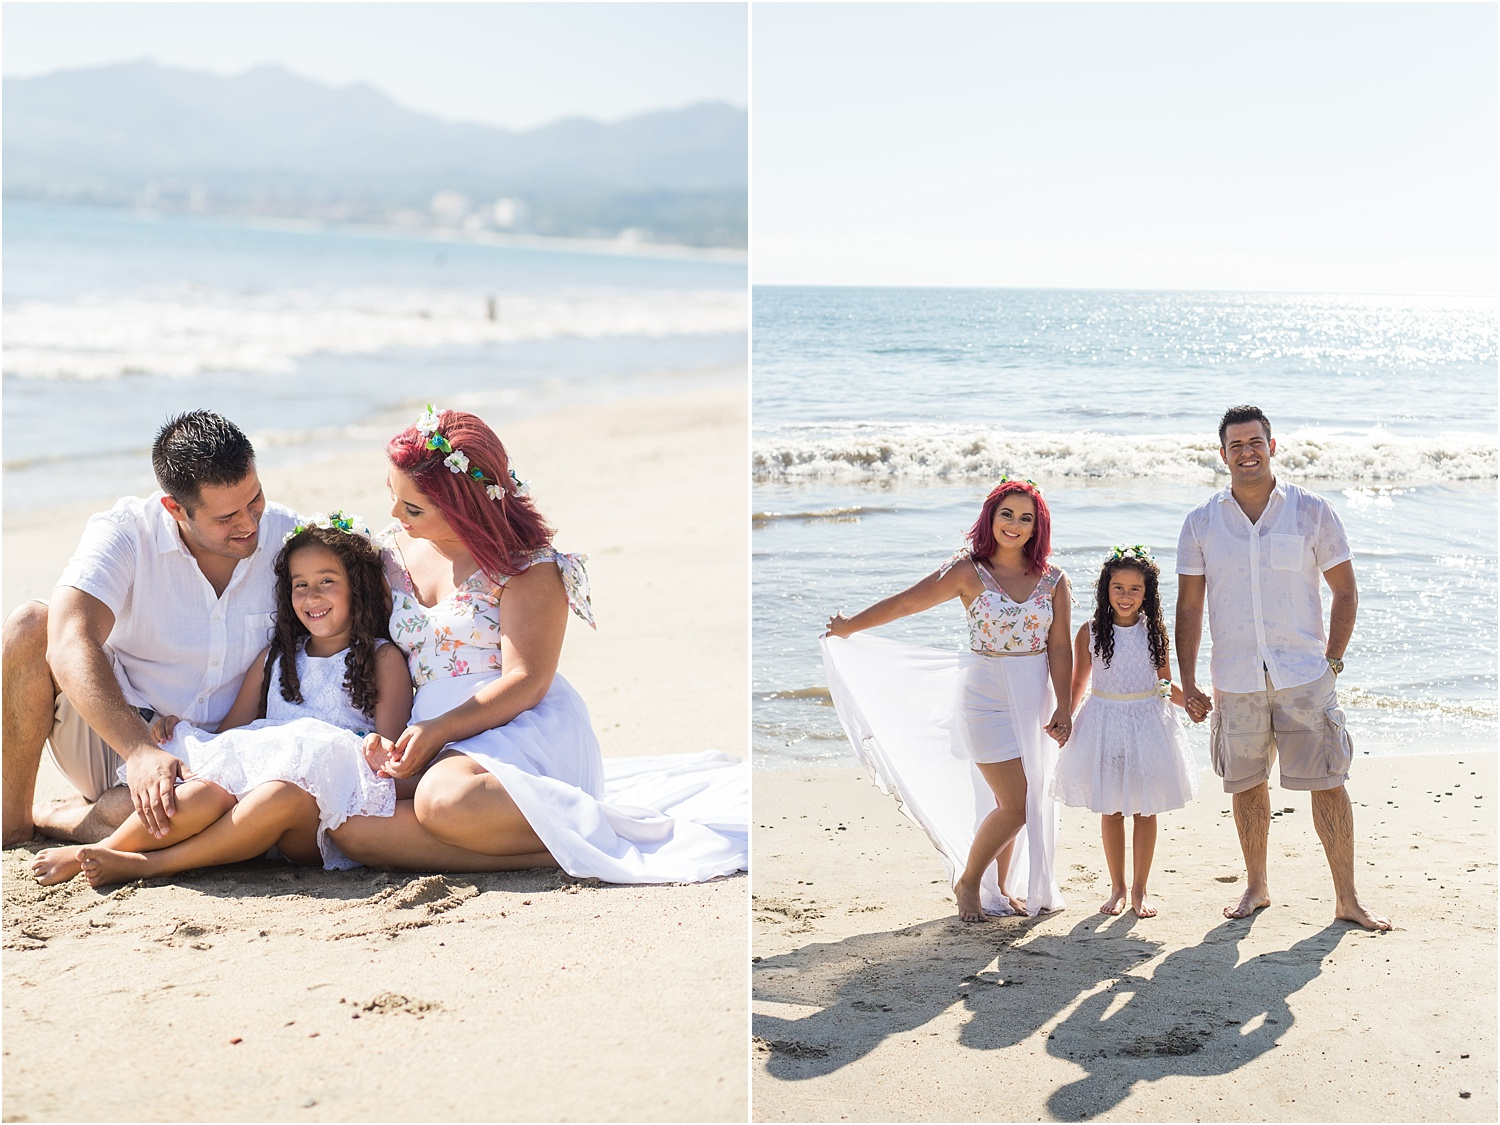 How to make the portrait photograph in Bright Midday Sun - family on the beach